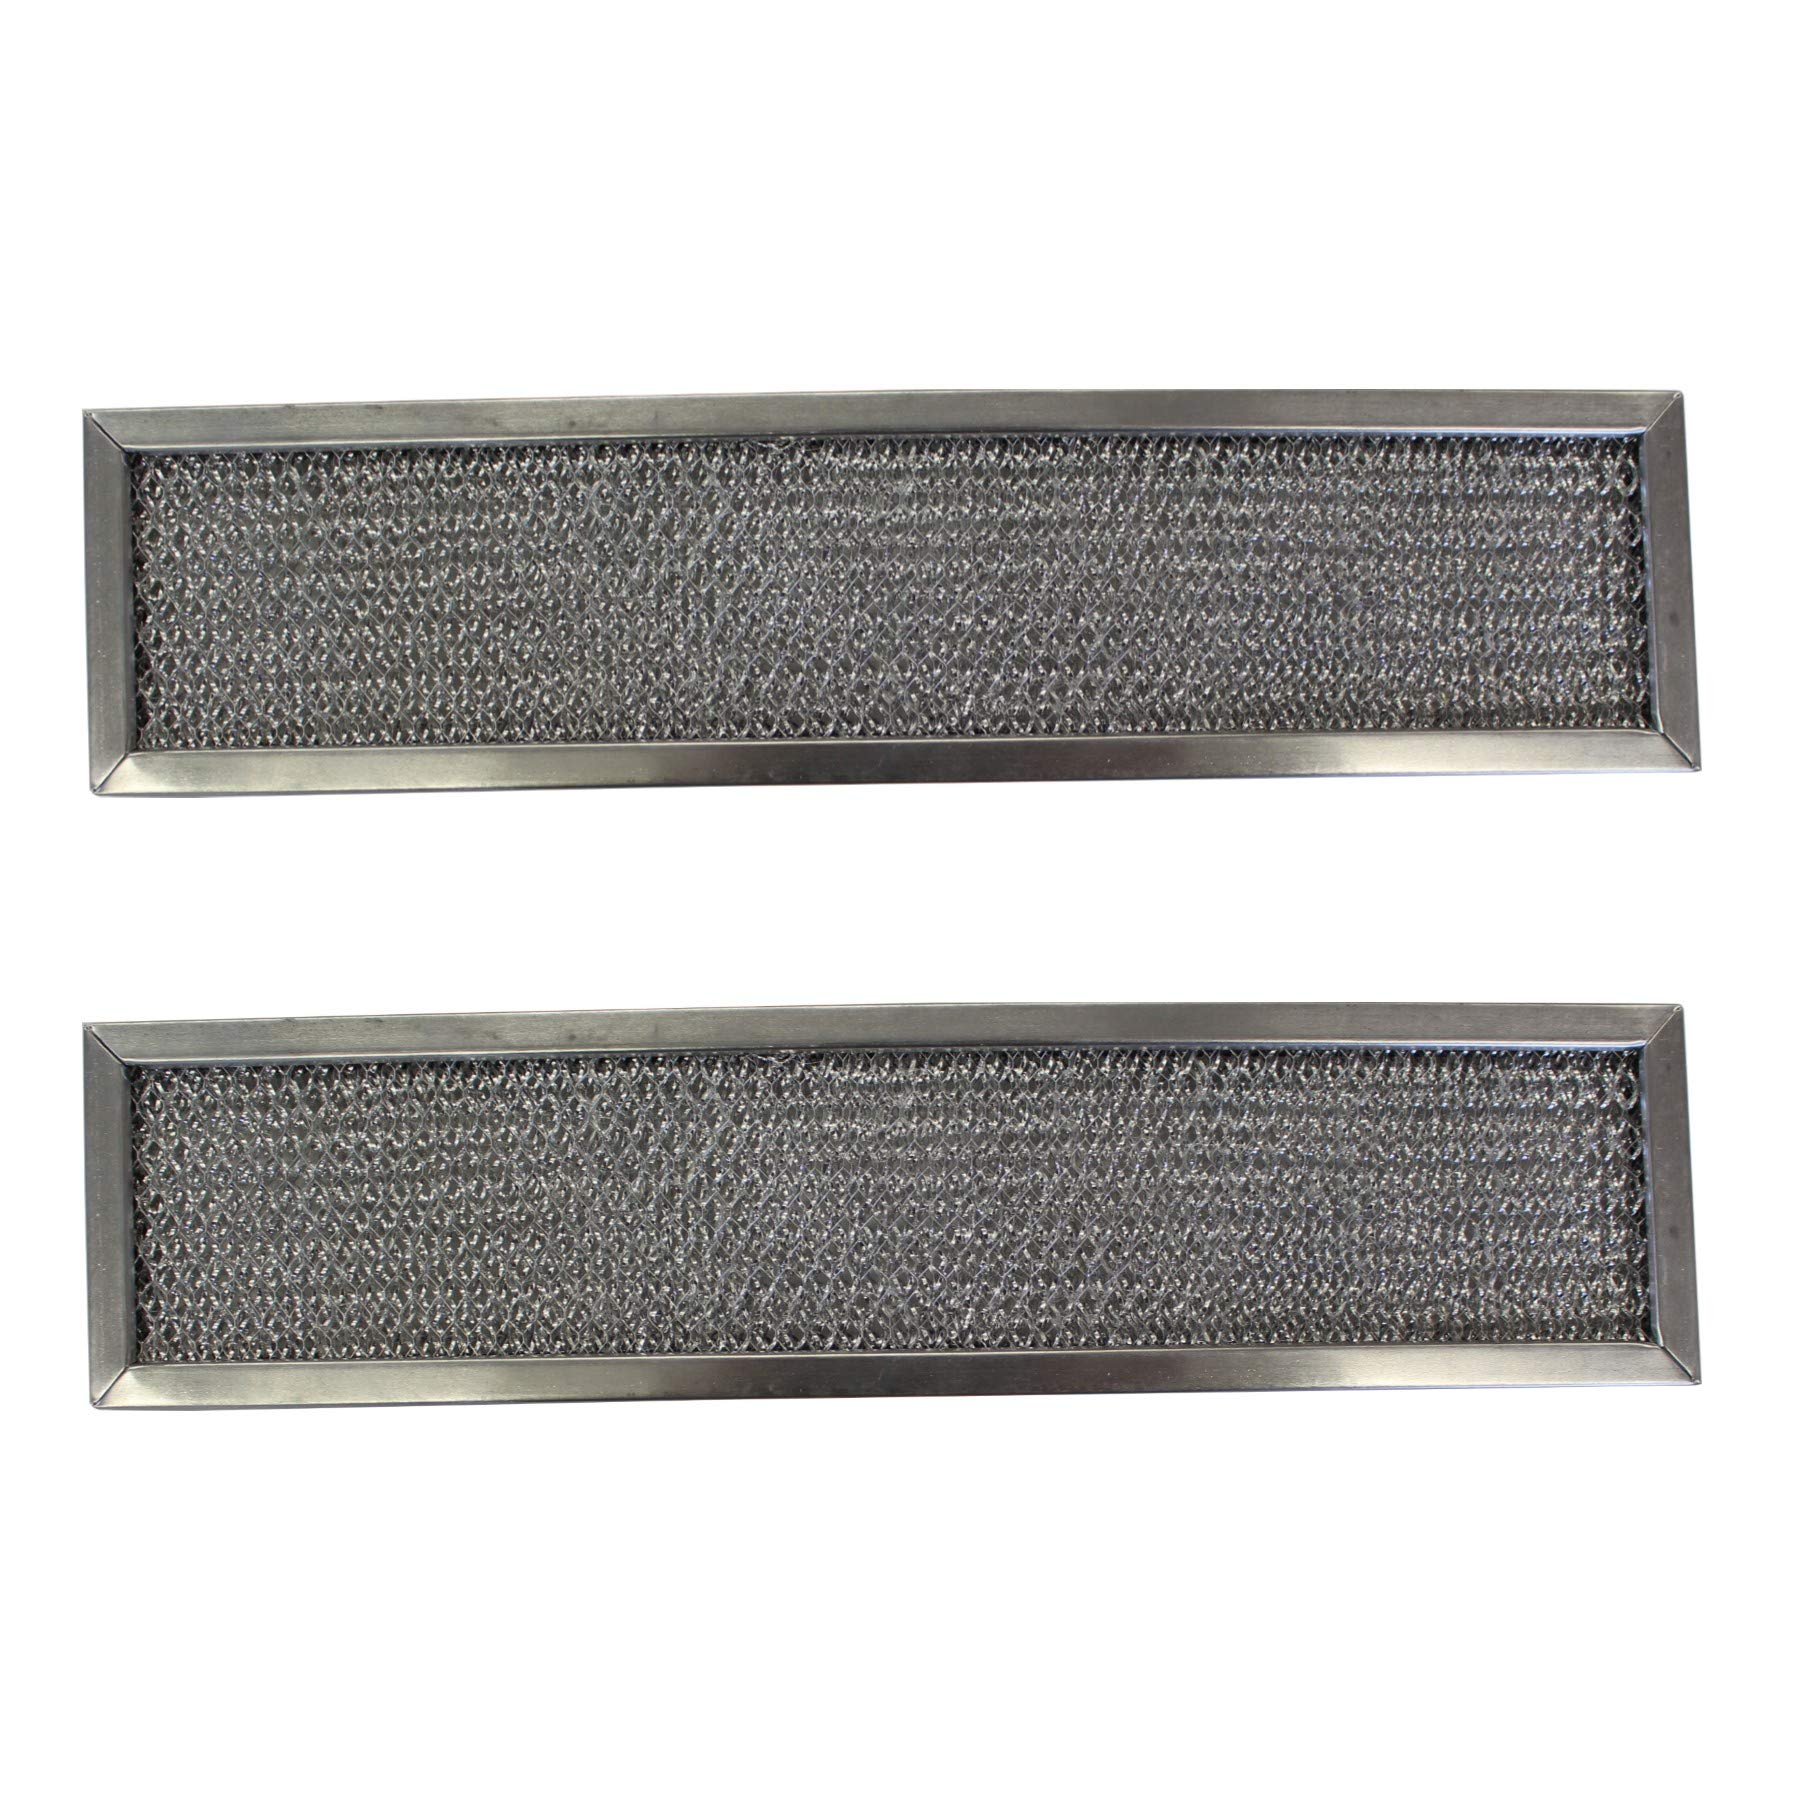 Replacement Aluminum Filters Compatible with Nutone 20150 000,G 8568,RHF0604  6 1/4 X 28 1/4 X 3/8 (